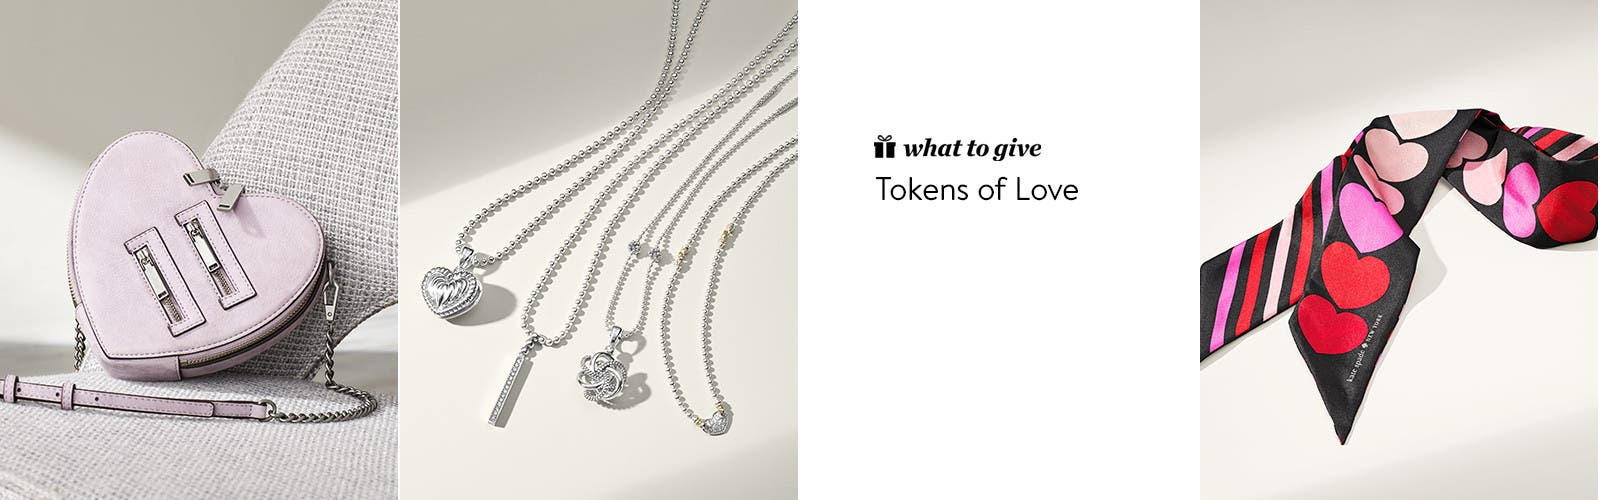 Tokens of love.